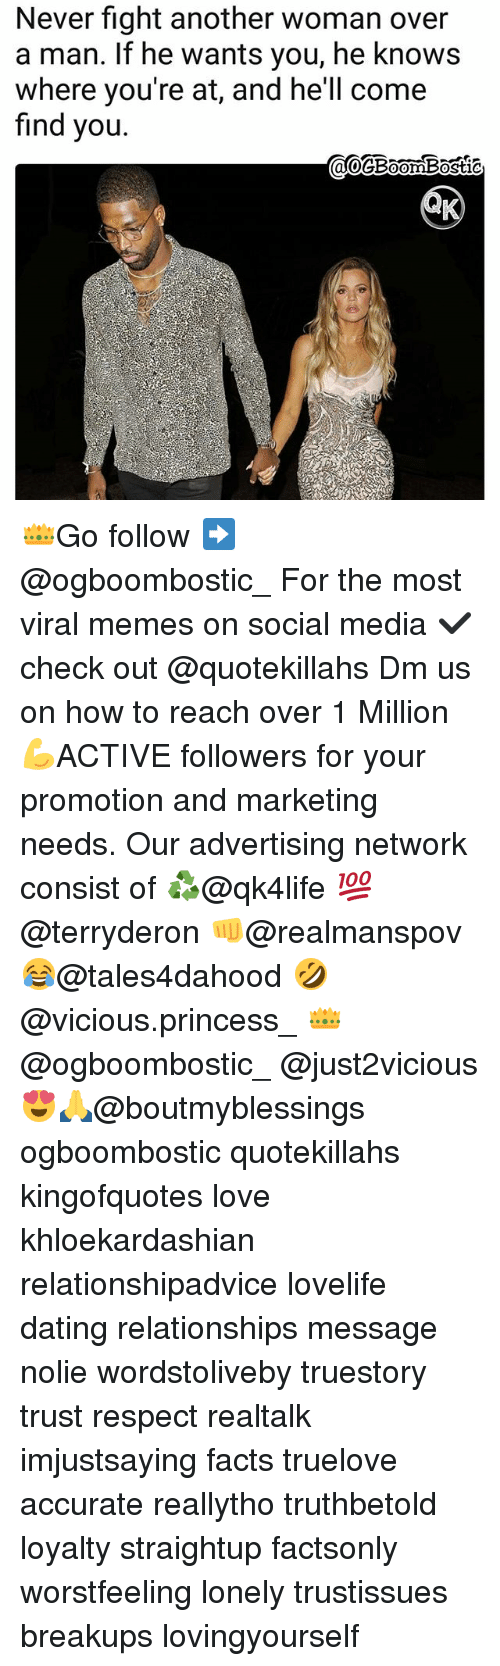 Dating, Facts, and Love: Never fight another woman over  a man. If he wants you, he knows  where you're at, and he'll come  find you. 👑Go follow ➡@ogboombostic_ For the most viral memes on social media ✔check out @quotekillahs Dm us on how to reach over 1 Million💪ACTIVE followers for your promotion and marketing needs. Our advertising network consist of ♻@qk4life 💯@terryderon 👊@realmanspov 😂@tales4dahood 🤣@vicious.princess_ 👑@ogboombostic_ @just2vicious😍🙏@boutmyblessings ogboombostic quotekillahs kingofquotes love khloekardashian relationshipadvice lovelife dating relationships message nolie wordstoliveby truestory trust respect realtalk imjustsaying facts truelove accurate reallytho truthbetold loyalty straightup factsonly worstfeeling lonely trustissues breakups lovingyourself